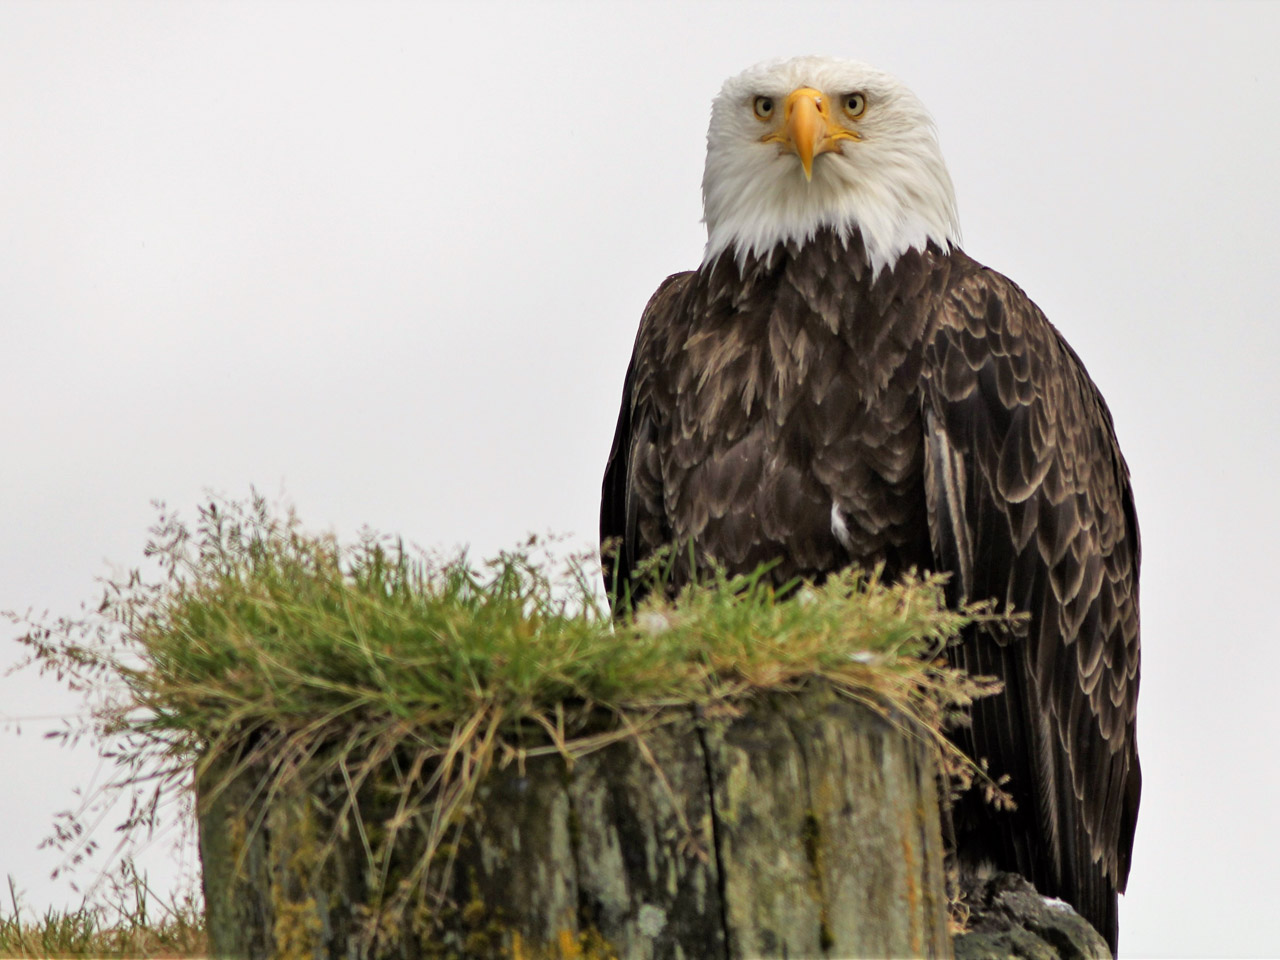 Bald eagle perched on an old jetty stanchion